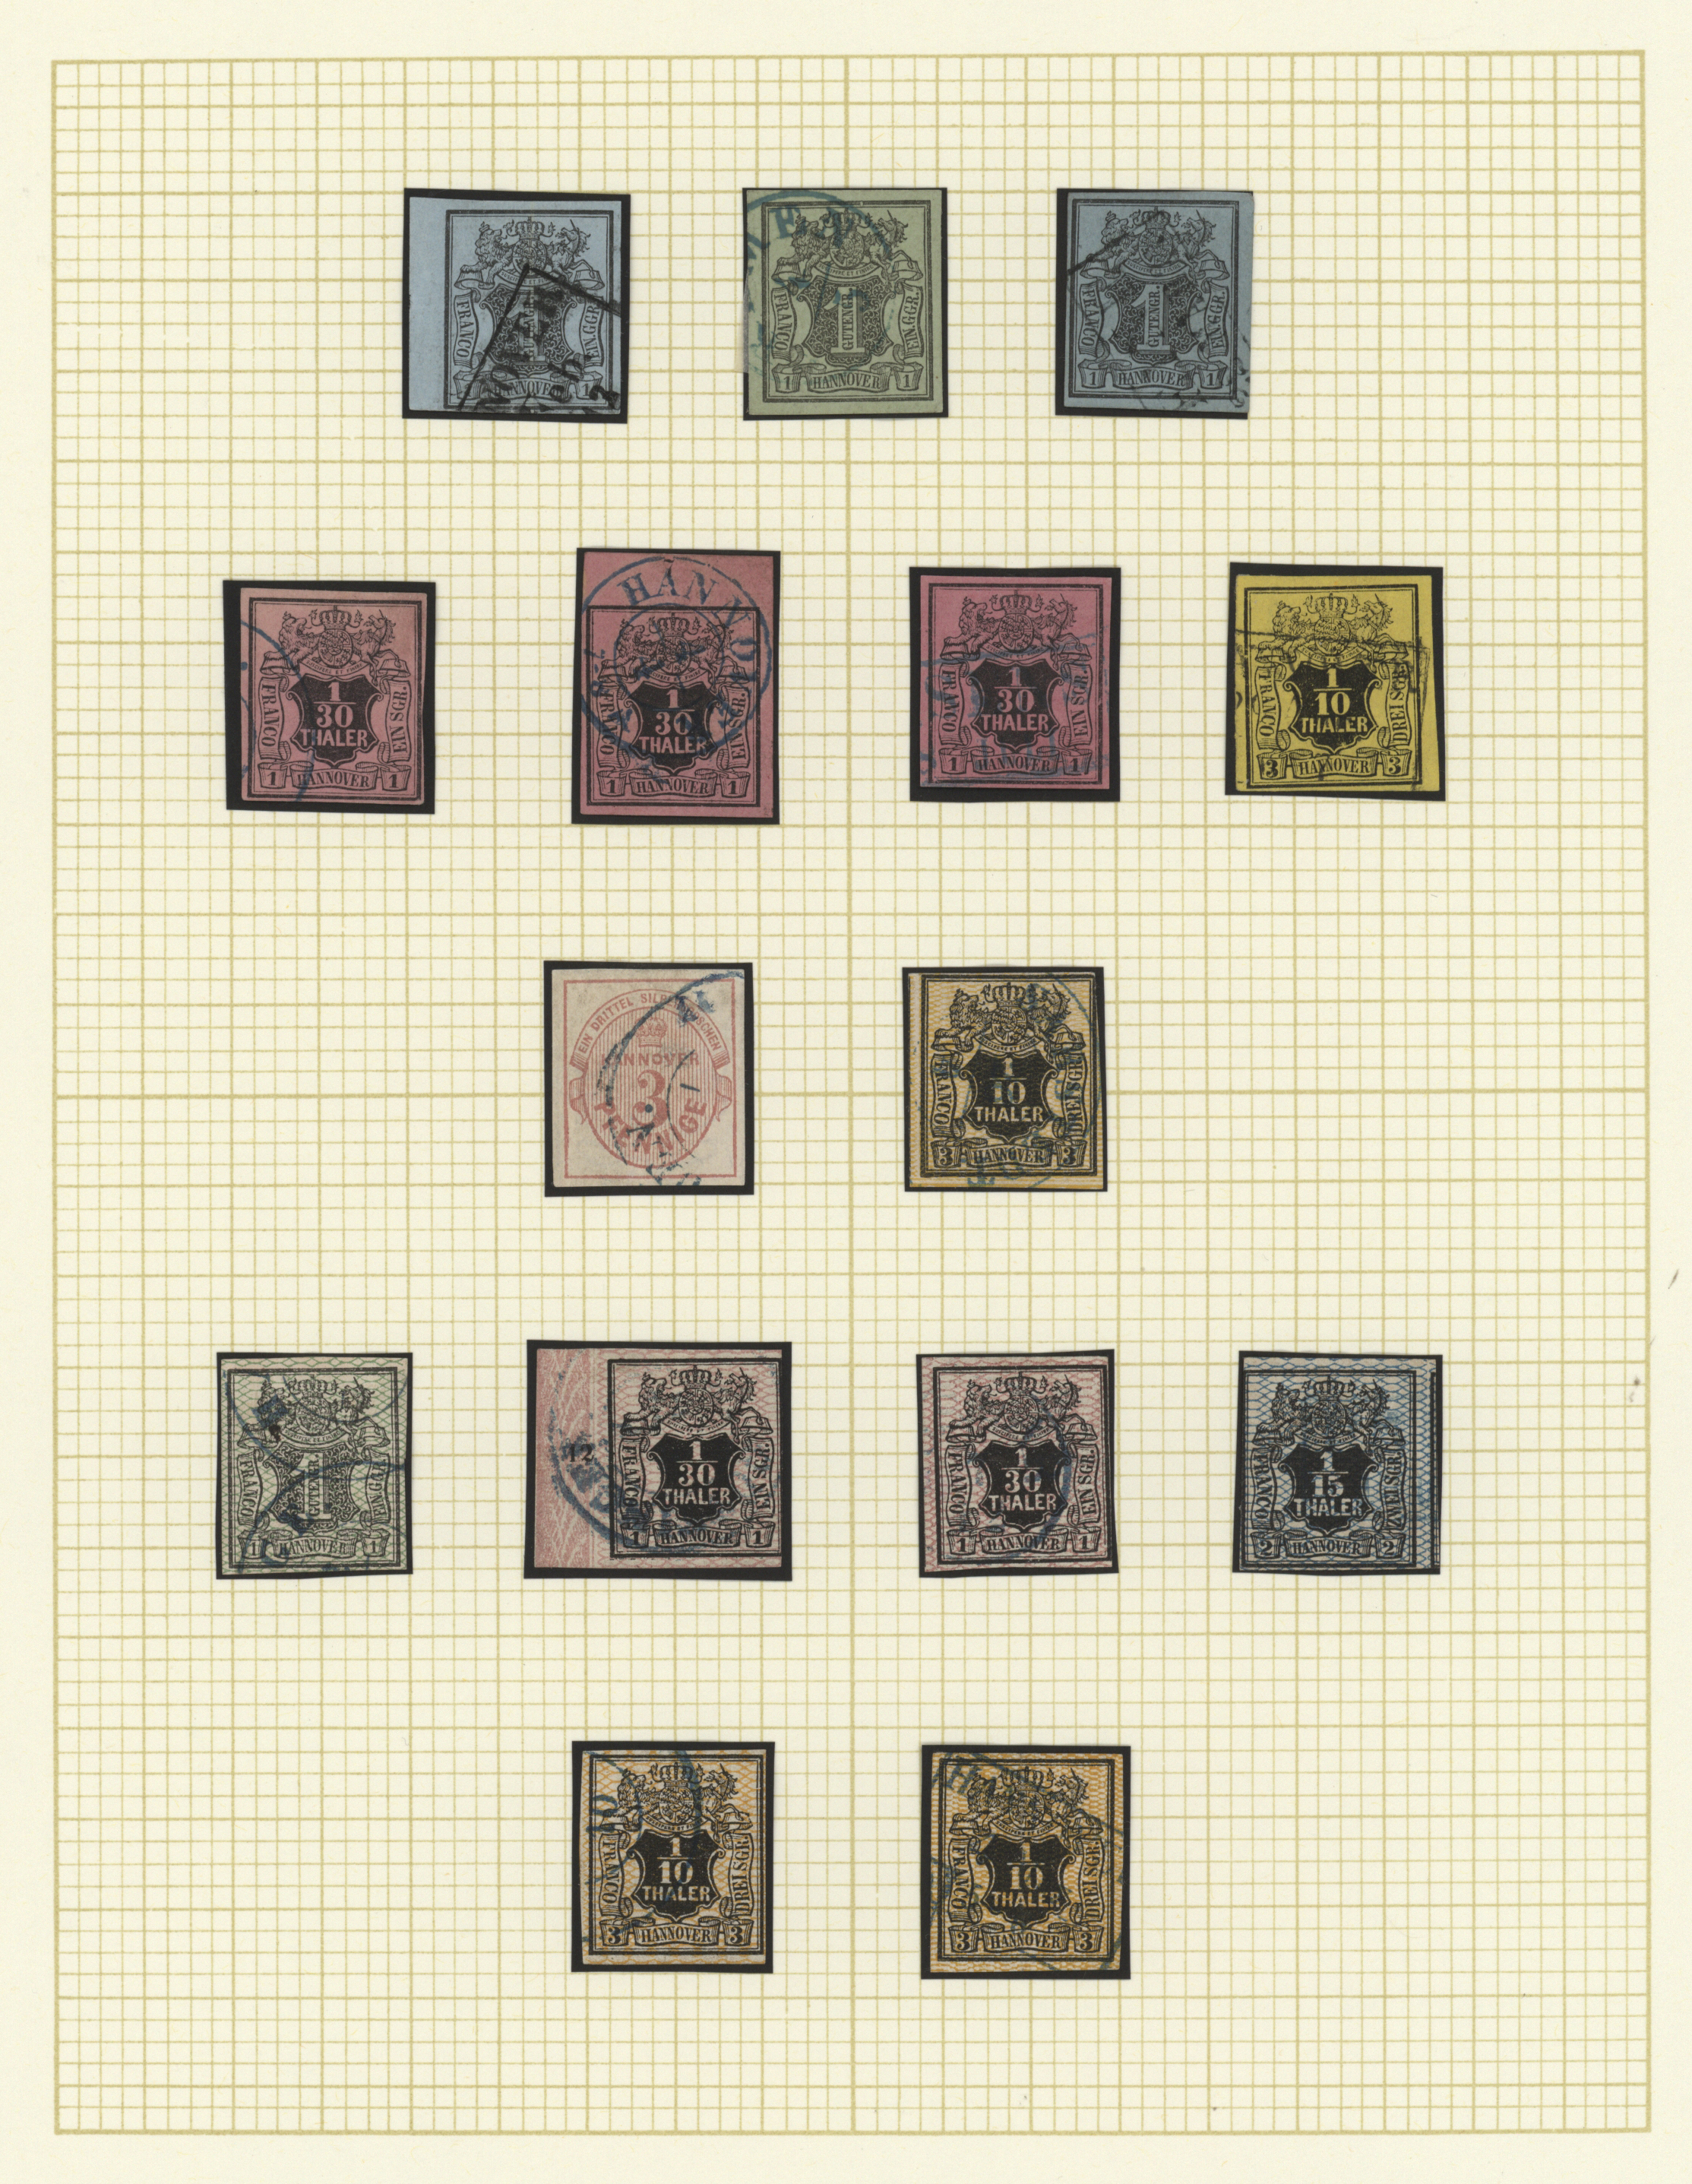 Lot 36369 - Hannover - Marken und Briefe  -  Auktionshaus Christoph Gärtner GmbH & Co. KG Collections Germany,  Collections Supplement, Surprise boxes #39 Day 7